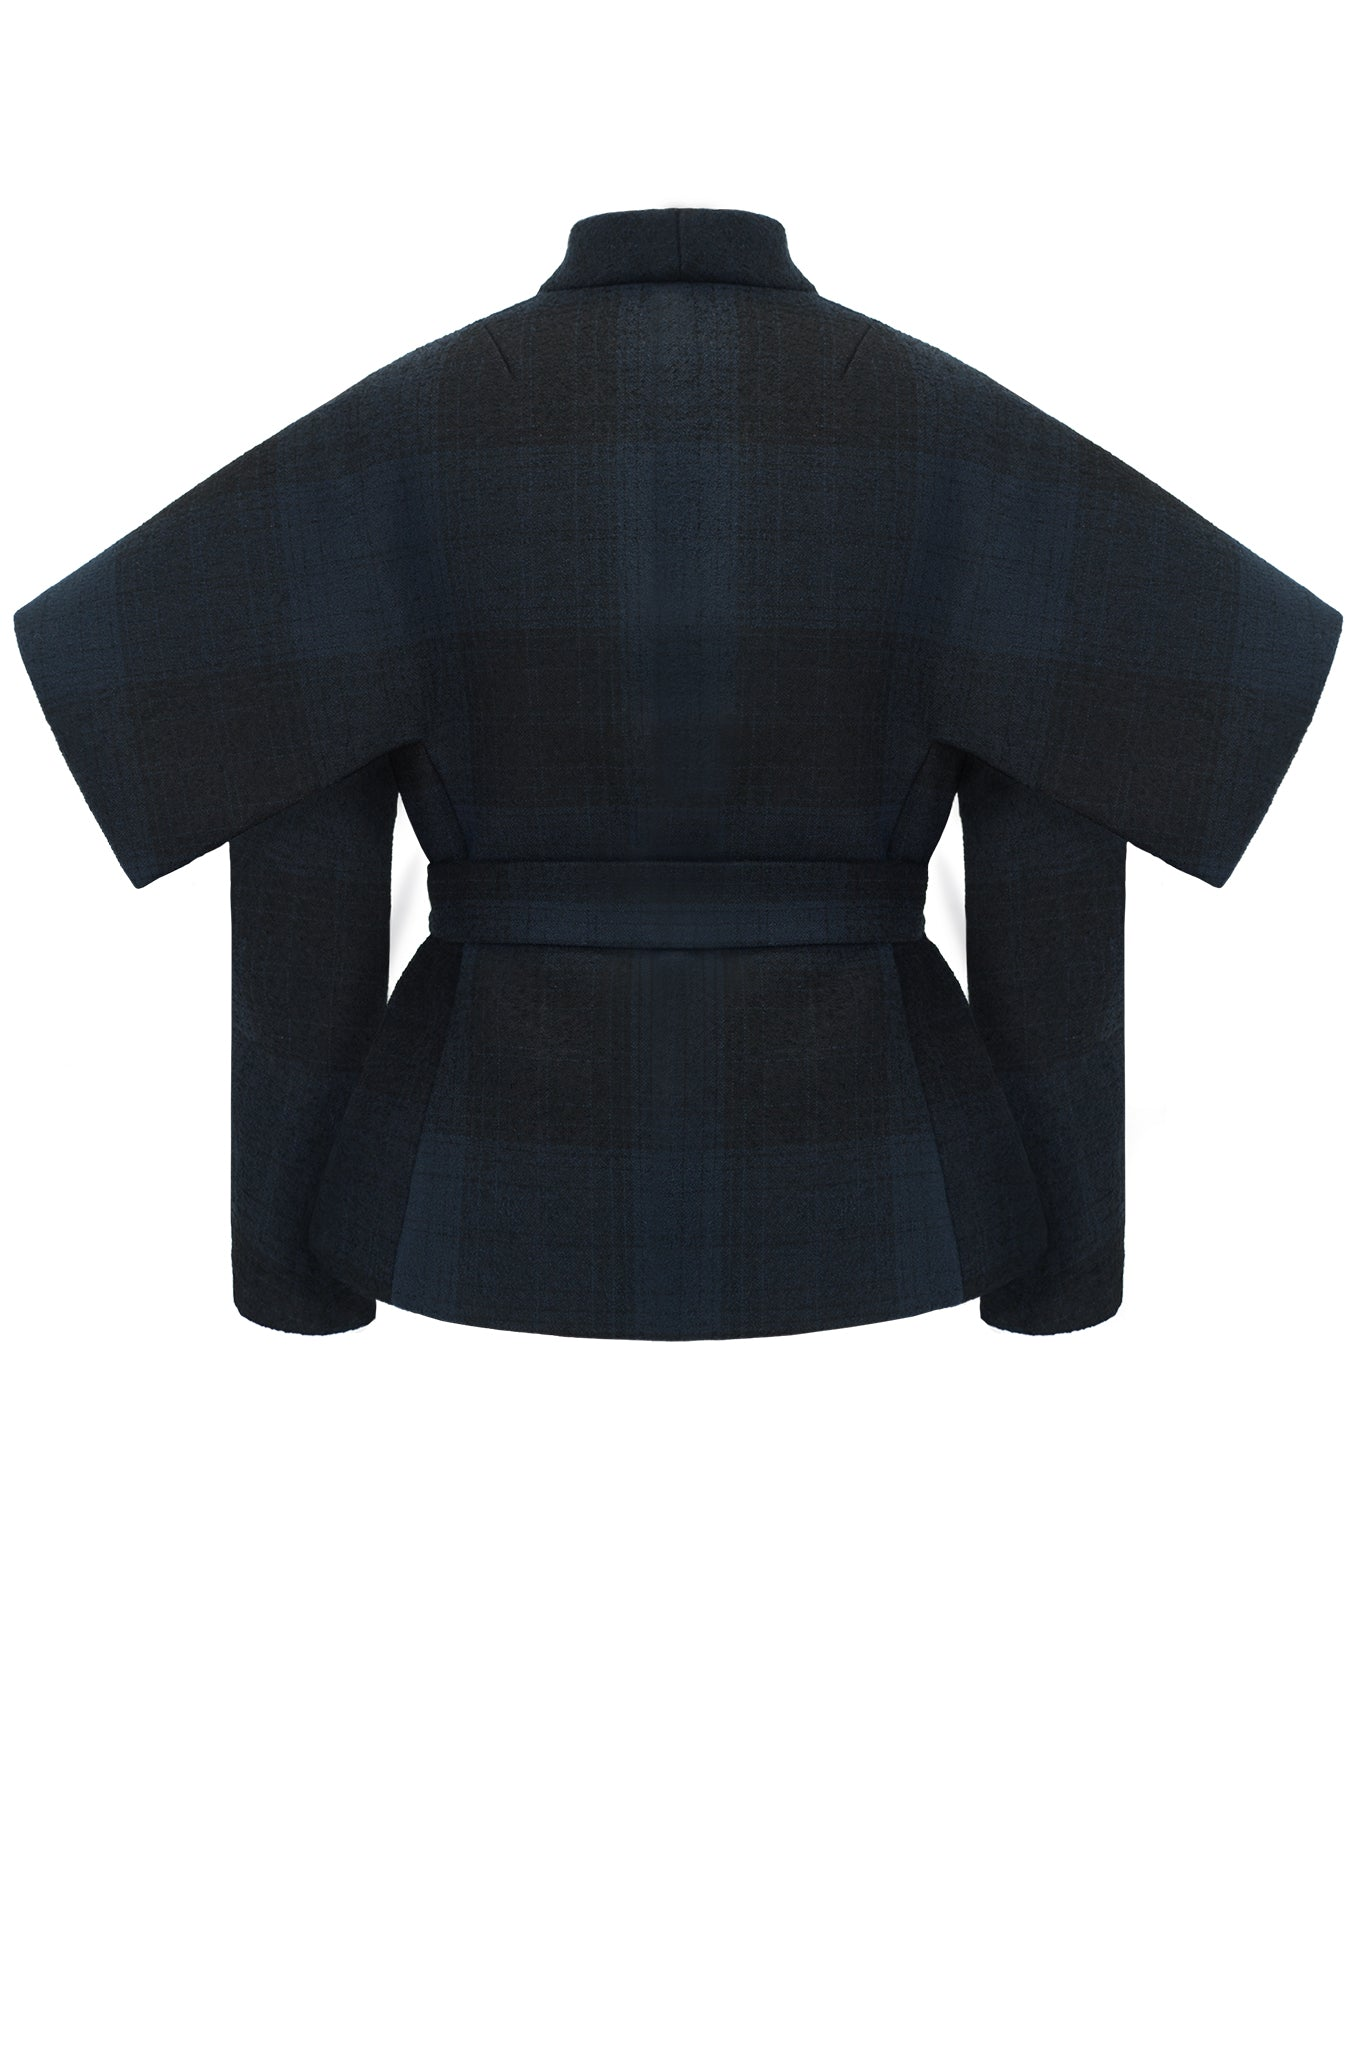 cimone wool striped navy belted jacket back